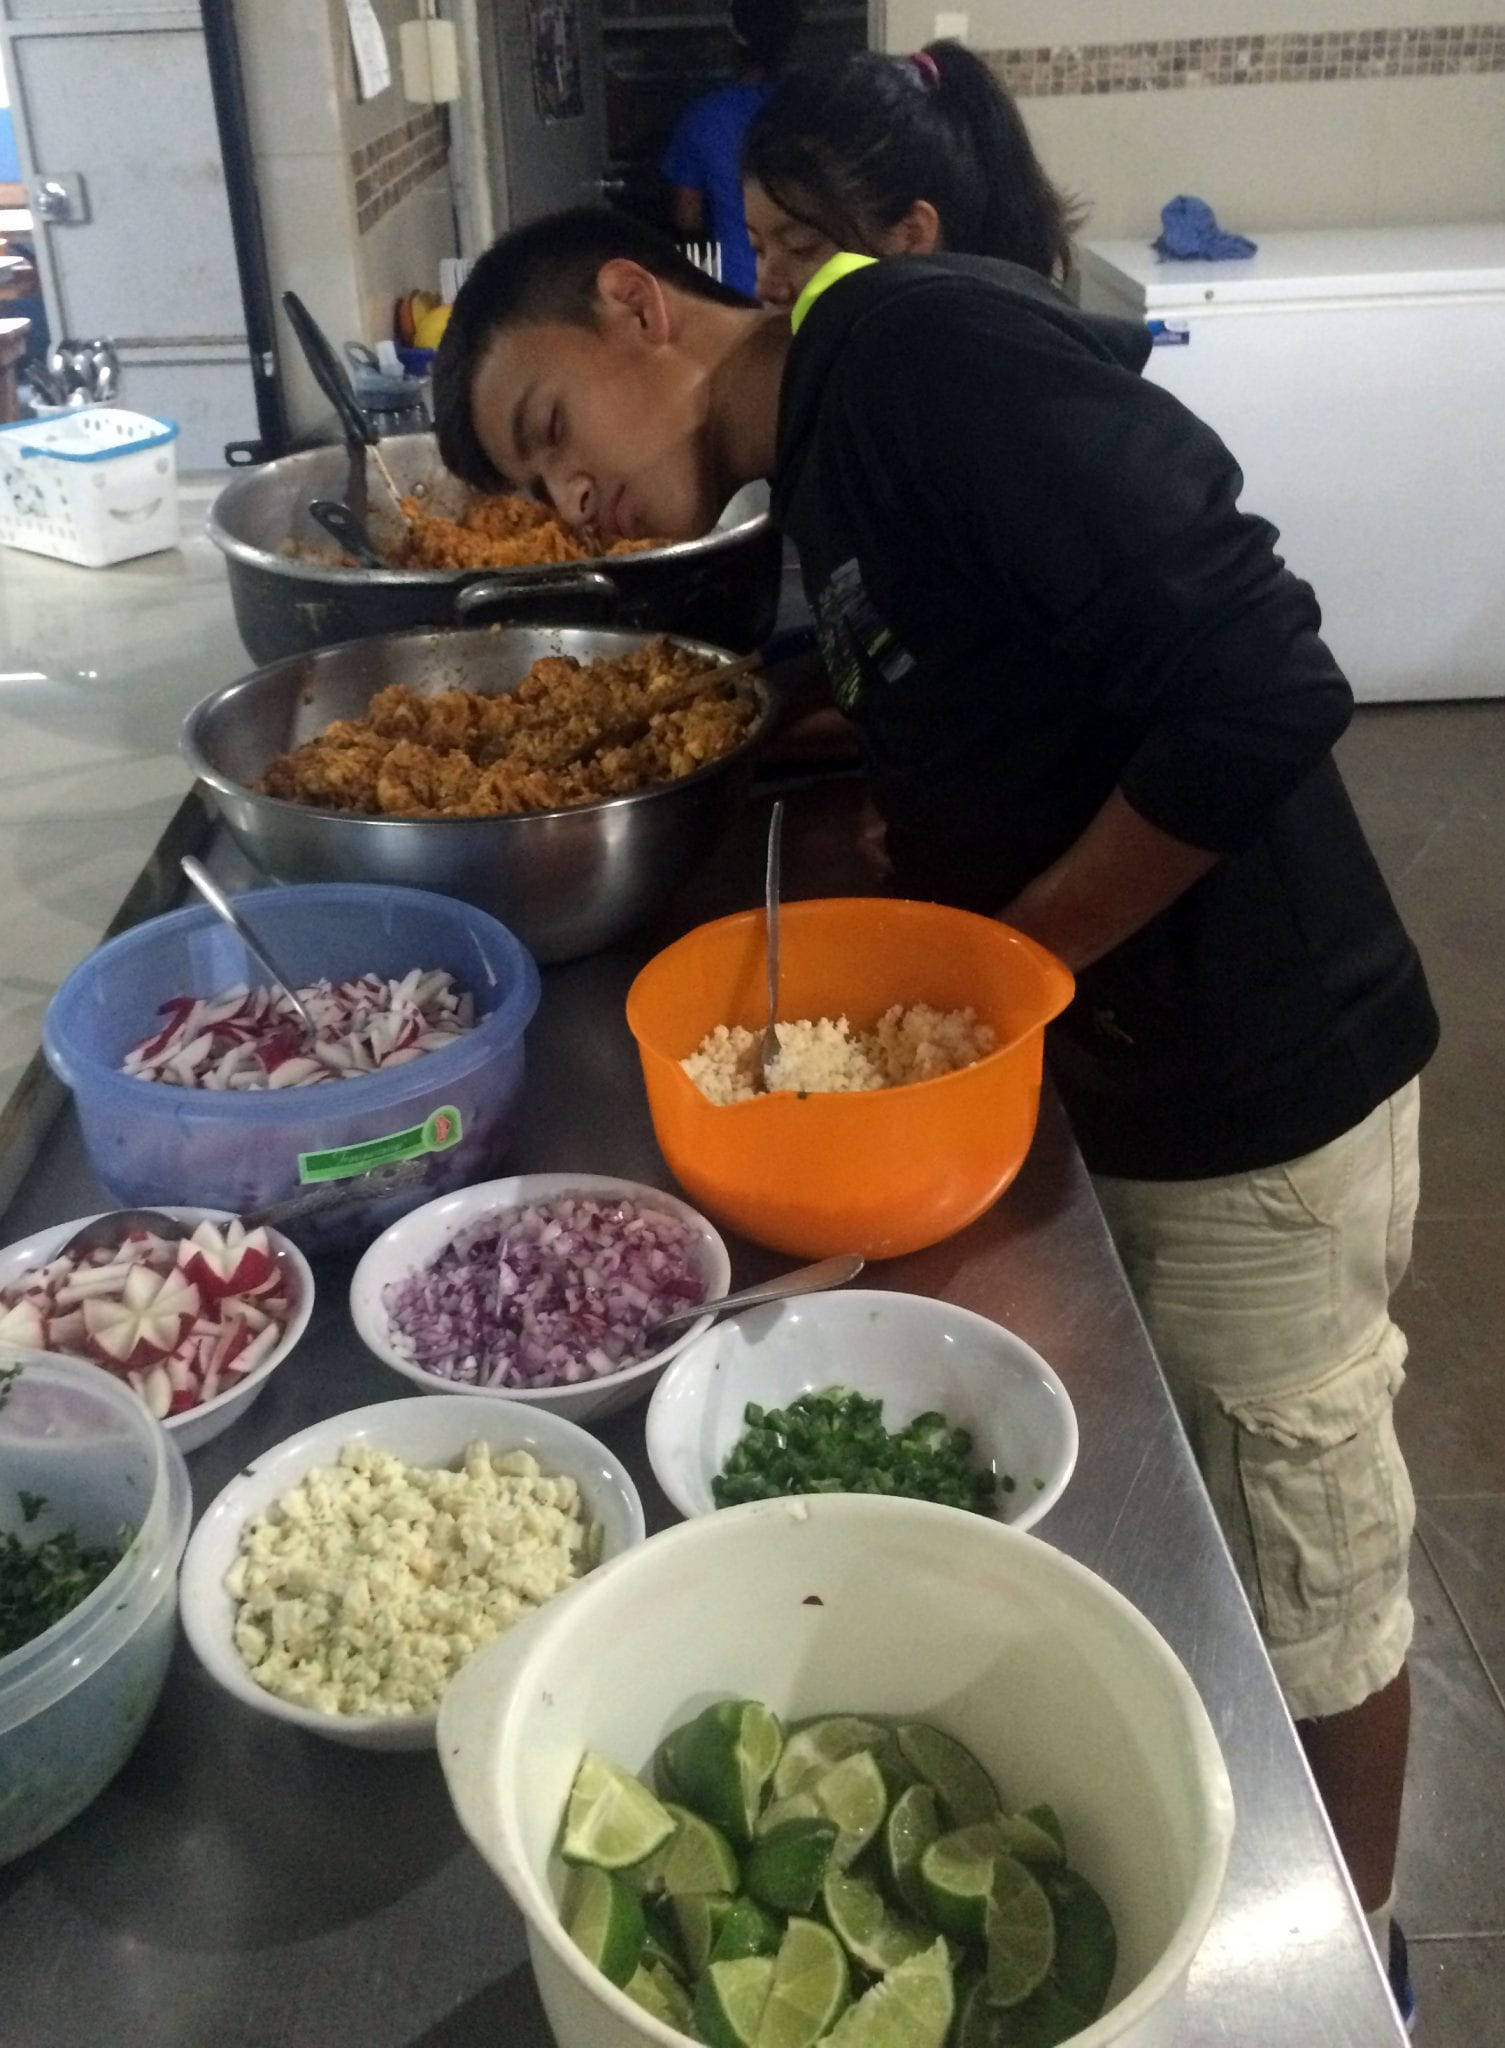 One of the students putting the finishing touches on their meal